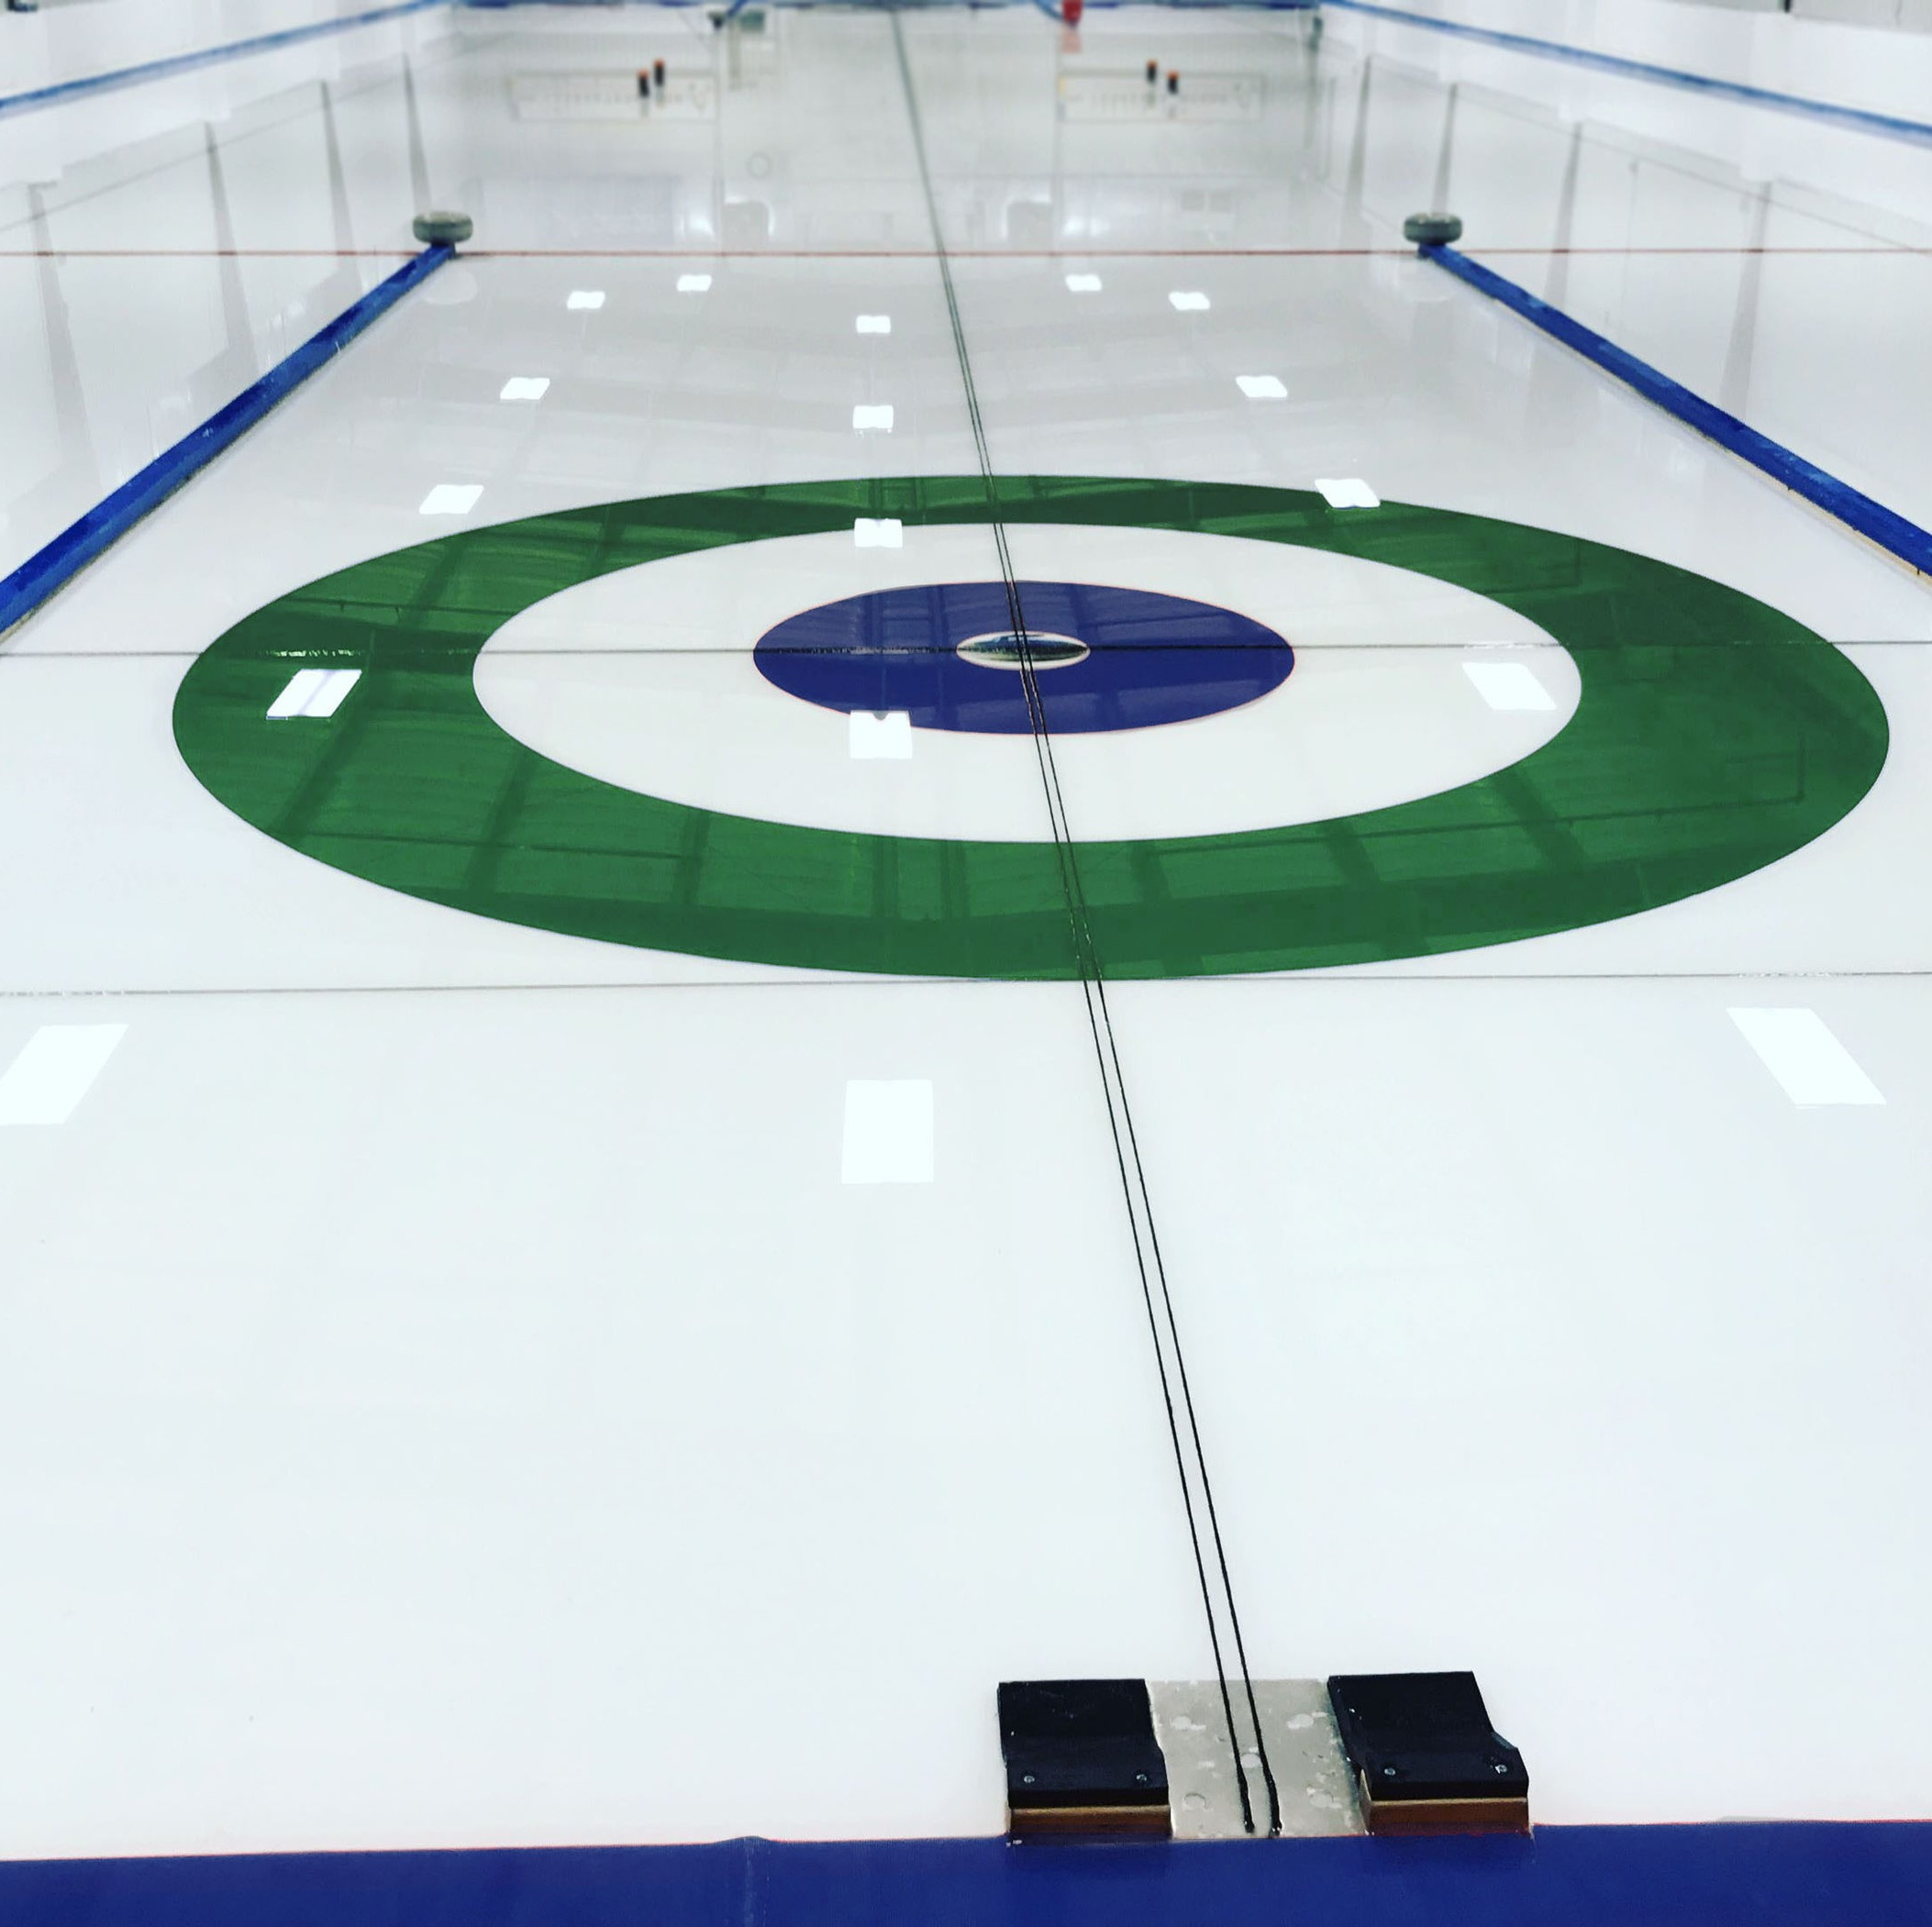 Inclusive Community Curling - Located in Maple City, the Leelanau Curling Club provides northwestern Michigan's only dedicated curling facility open year-round. Try curling at one of our frequent Learn-To-Curl events, join the League for fun weekly play, book a group event or grab a bite and something to drink and just watch the action! We can't wait to see you on the ice!Book a Learn to Curl Class ➝